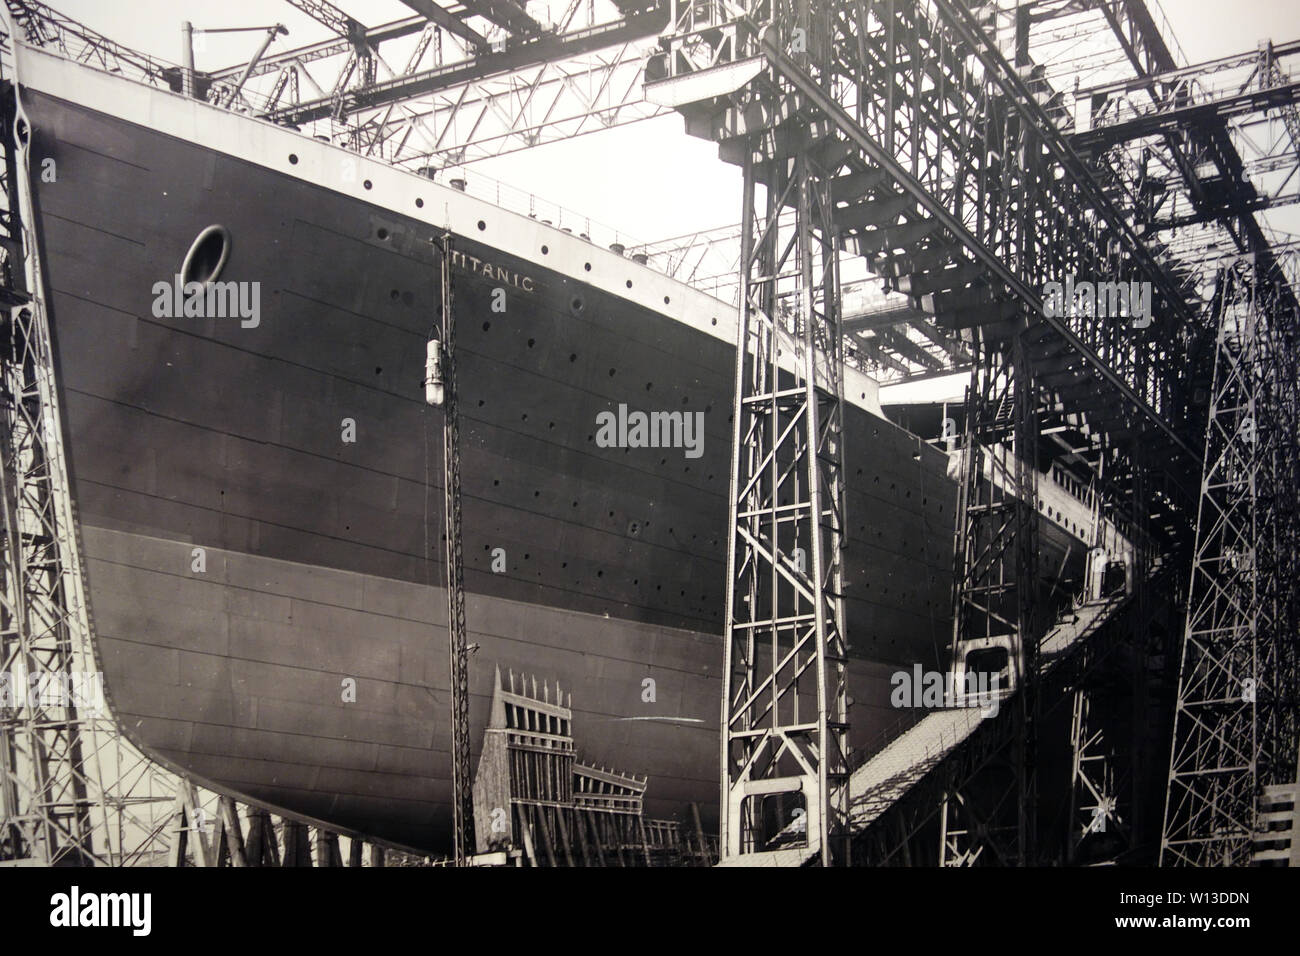 Photograph of the Titanic Ship Being Built at the Titanic Experience Museum in the Titanic Quarter, Belfast, County Antrim, Northern Ireland, UK. - Stock Image